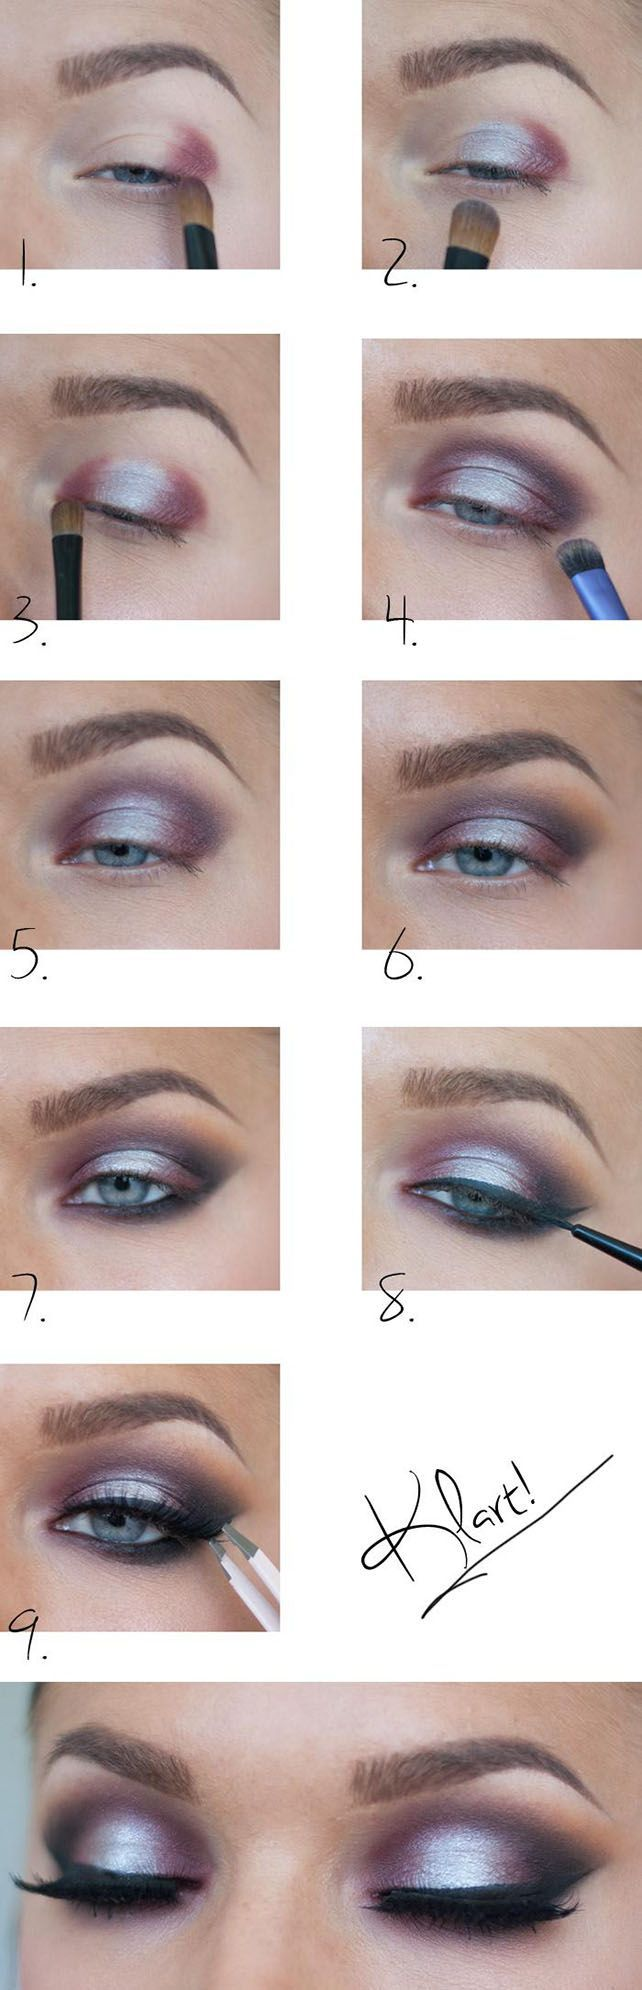 eye makeup ideas for this weekend french manicures manicures